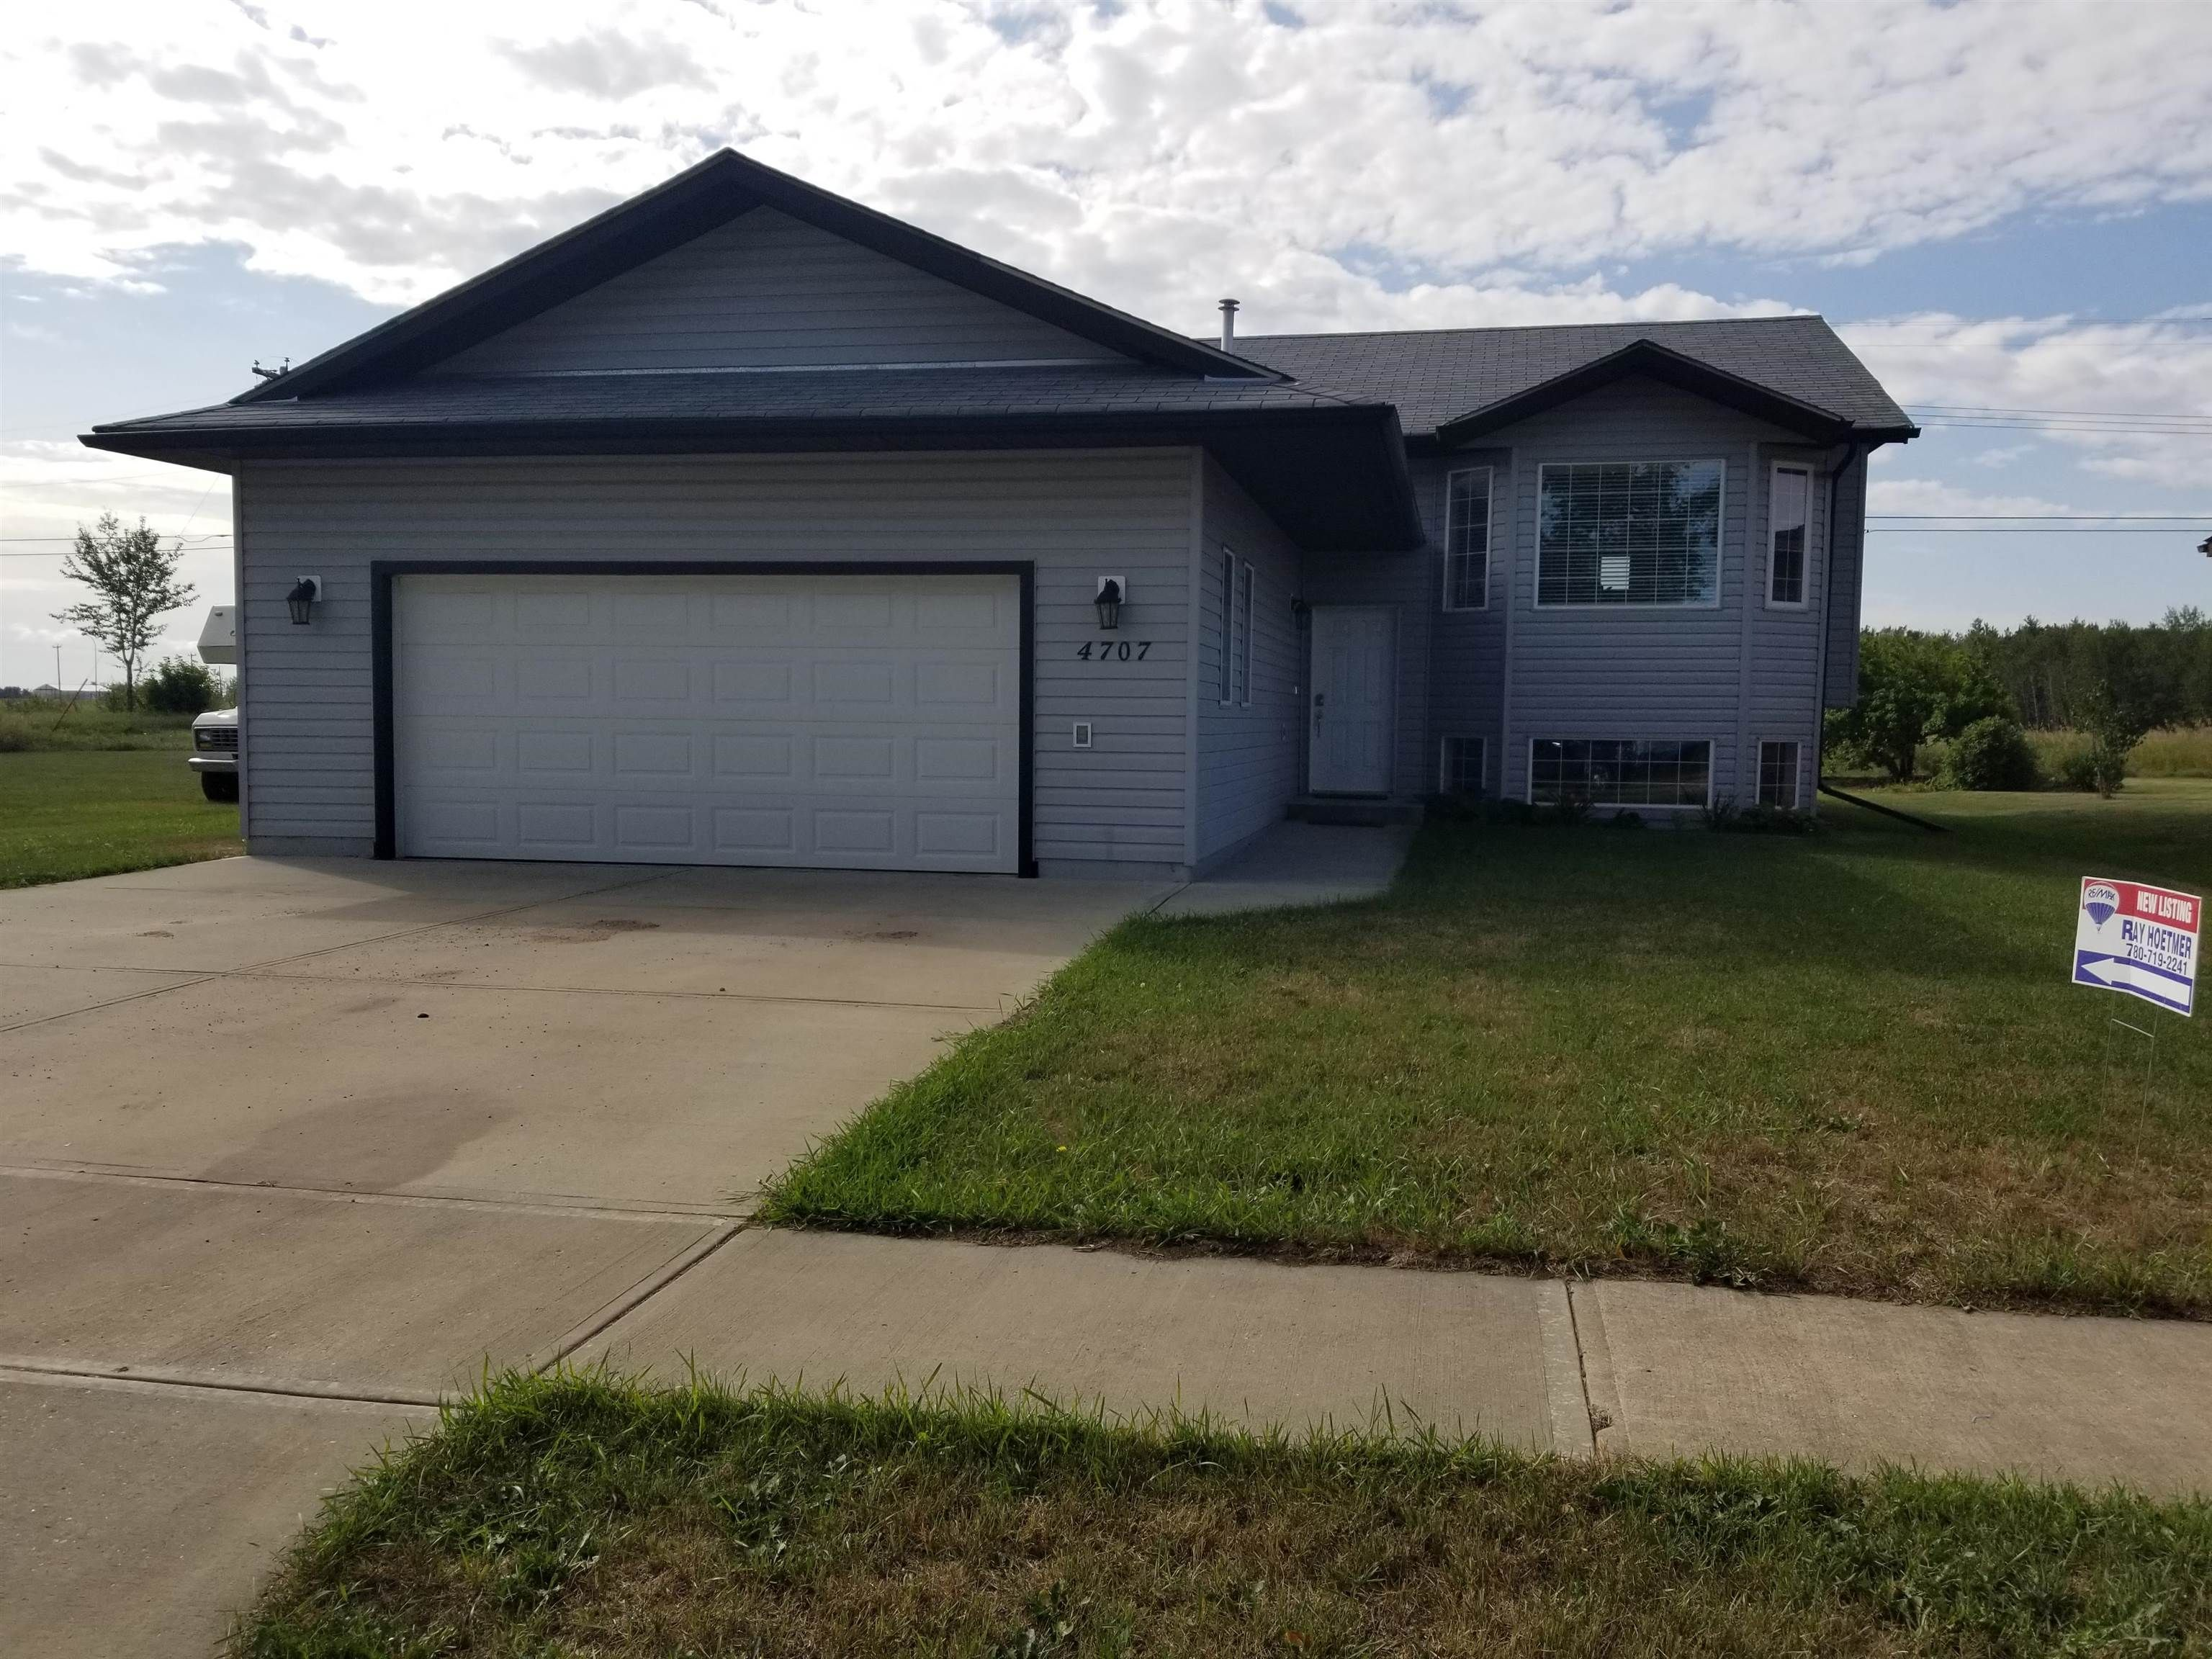 Main Photo: 4707 46 Avenue: Redwater House for sale : MLS®# E4259199